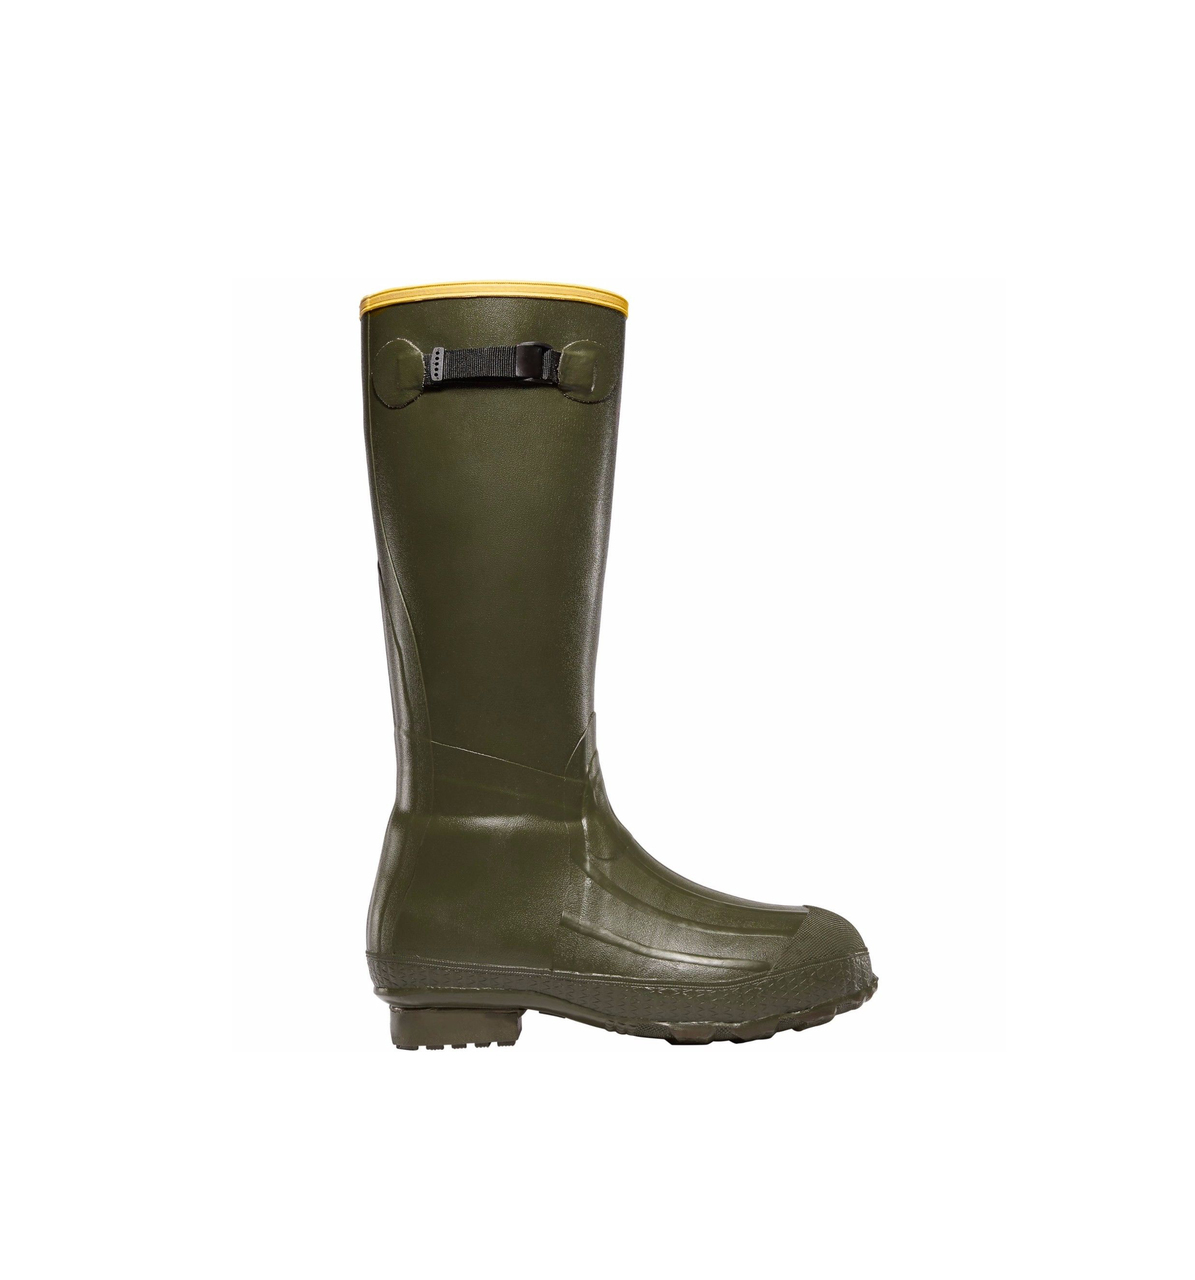 LaCrosse Burly Classic 18″ OD Green Hunting Boots